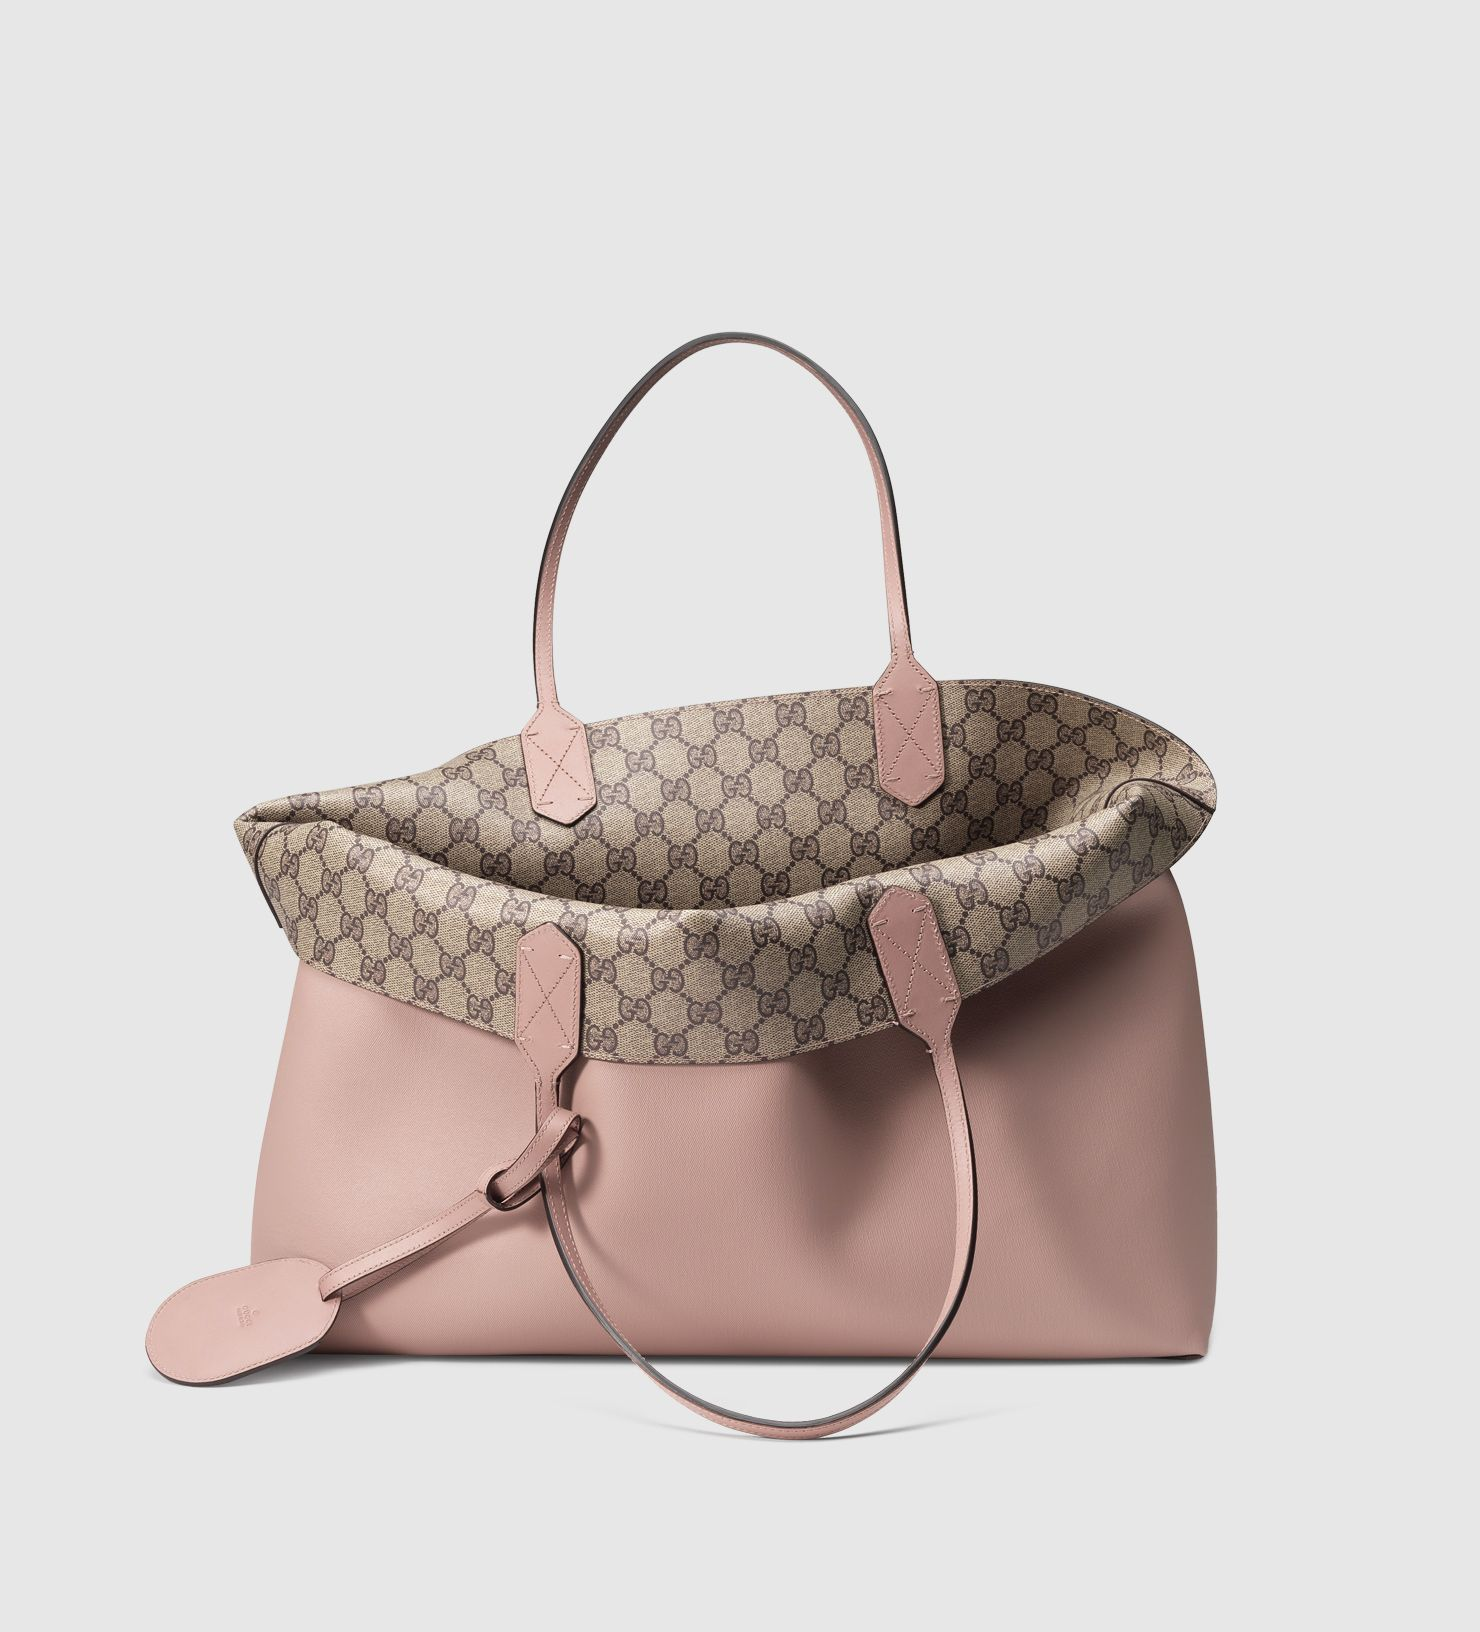 gucci bags 2017 prices. just love this bag! wow! gucci 2016 more gucci bags 2017 prices